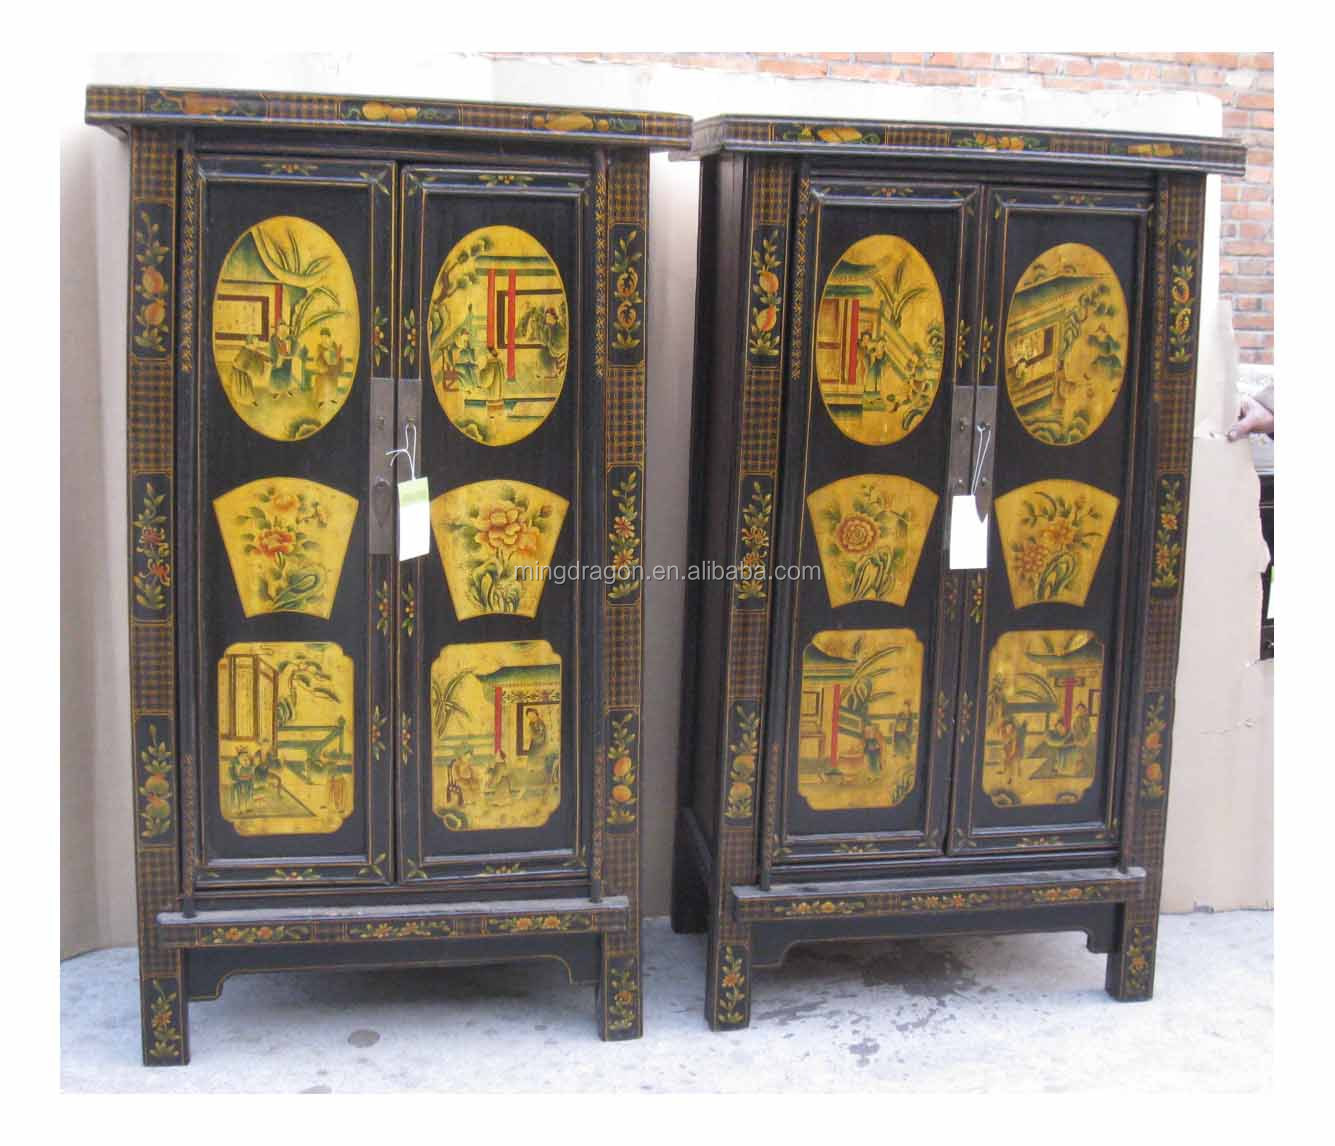 Reproduction&Antique Style Shanxi Painted Cabinet